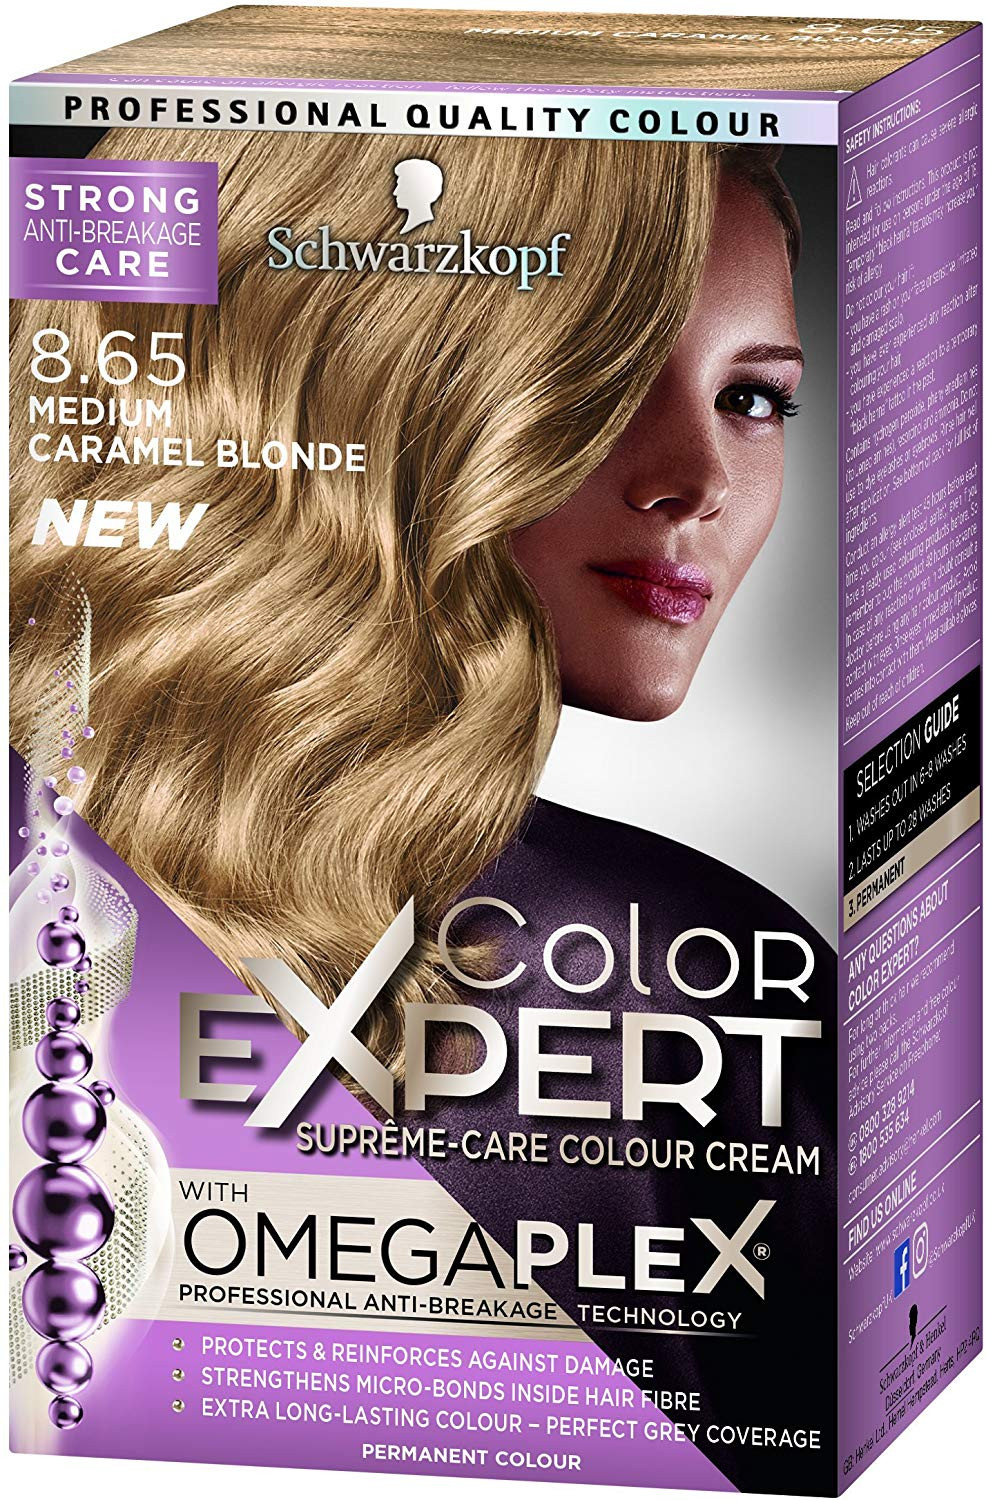 Time For a Hair Flick: 5 Awesome Hair Colours to Dye For! Femie Magazine